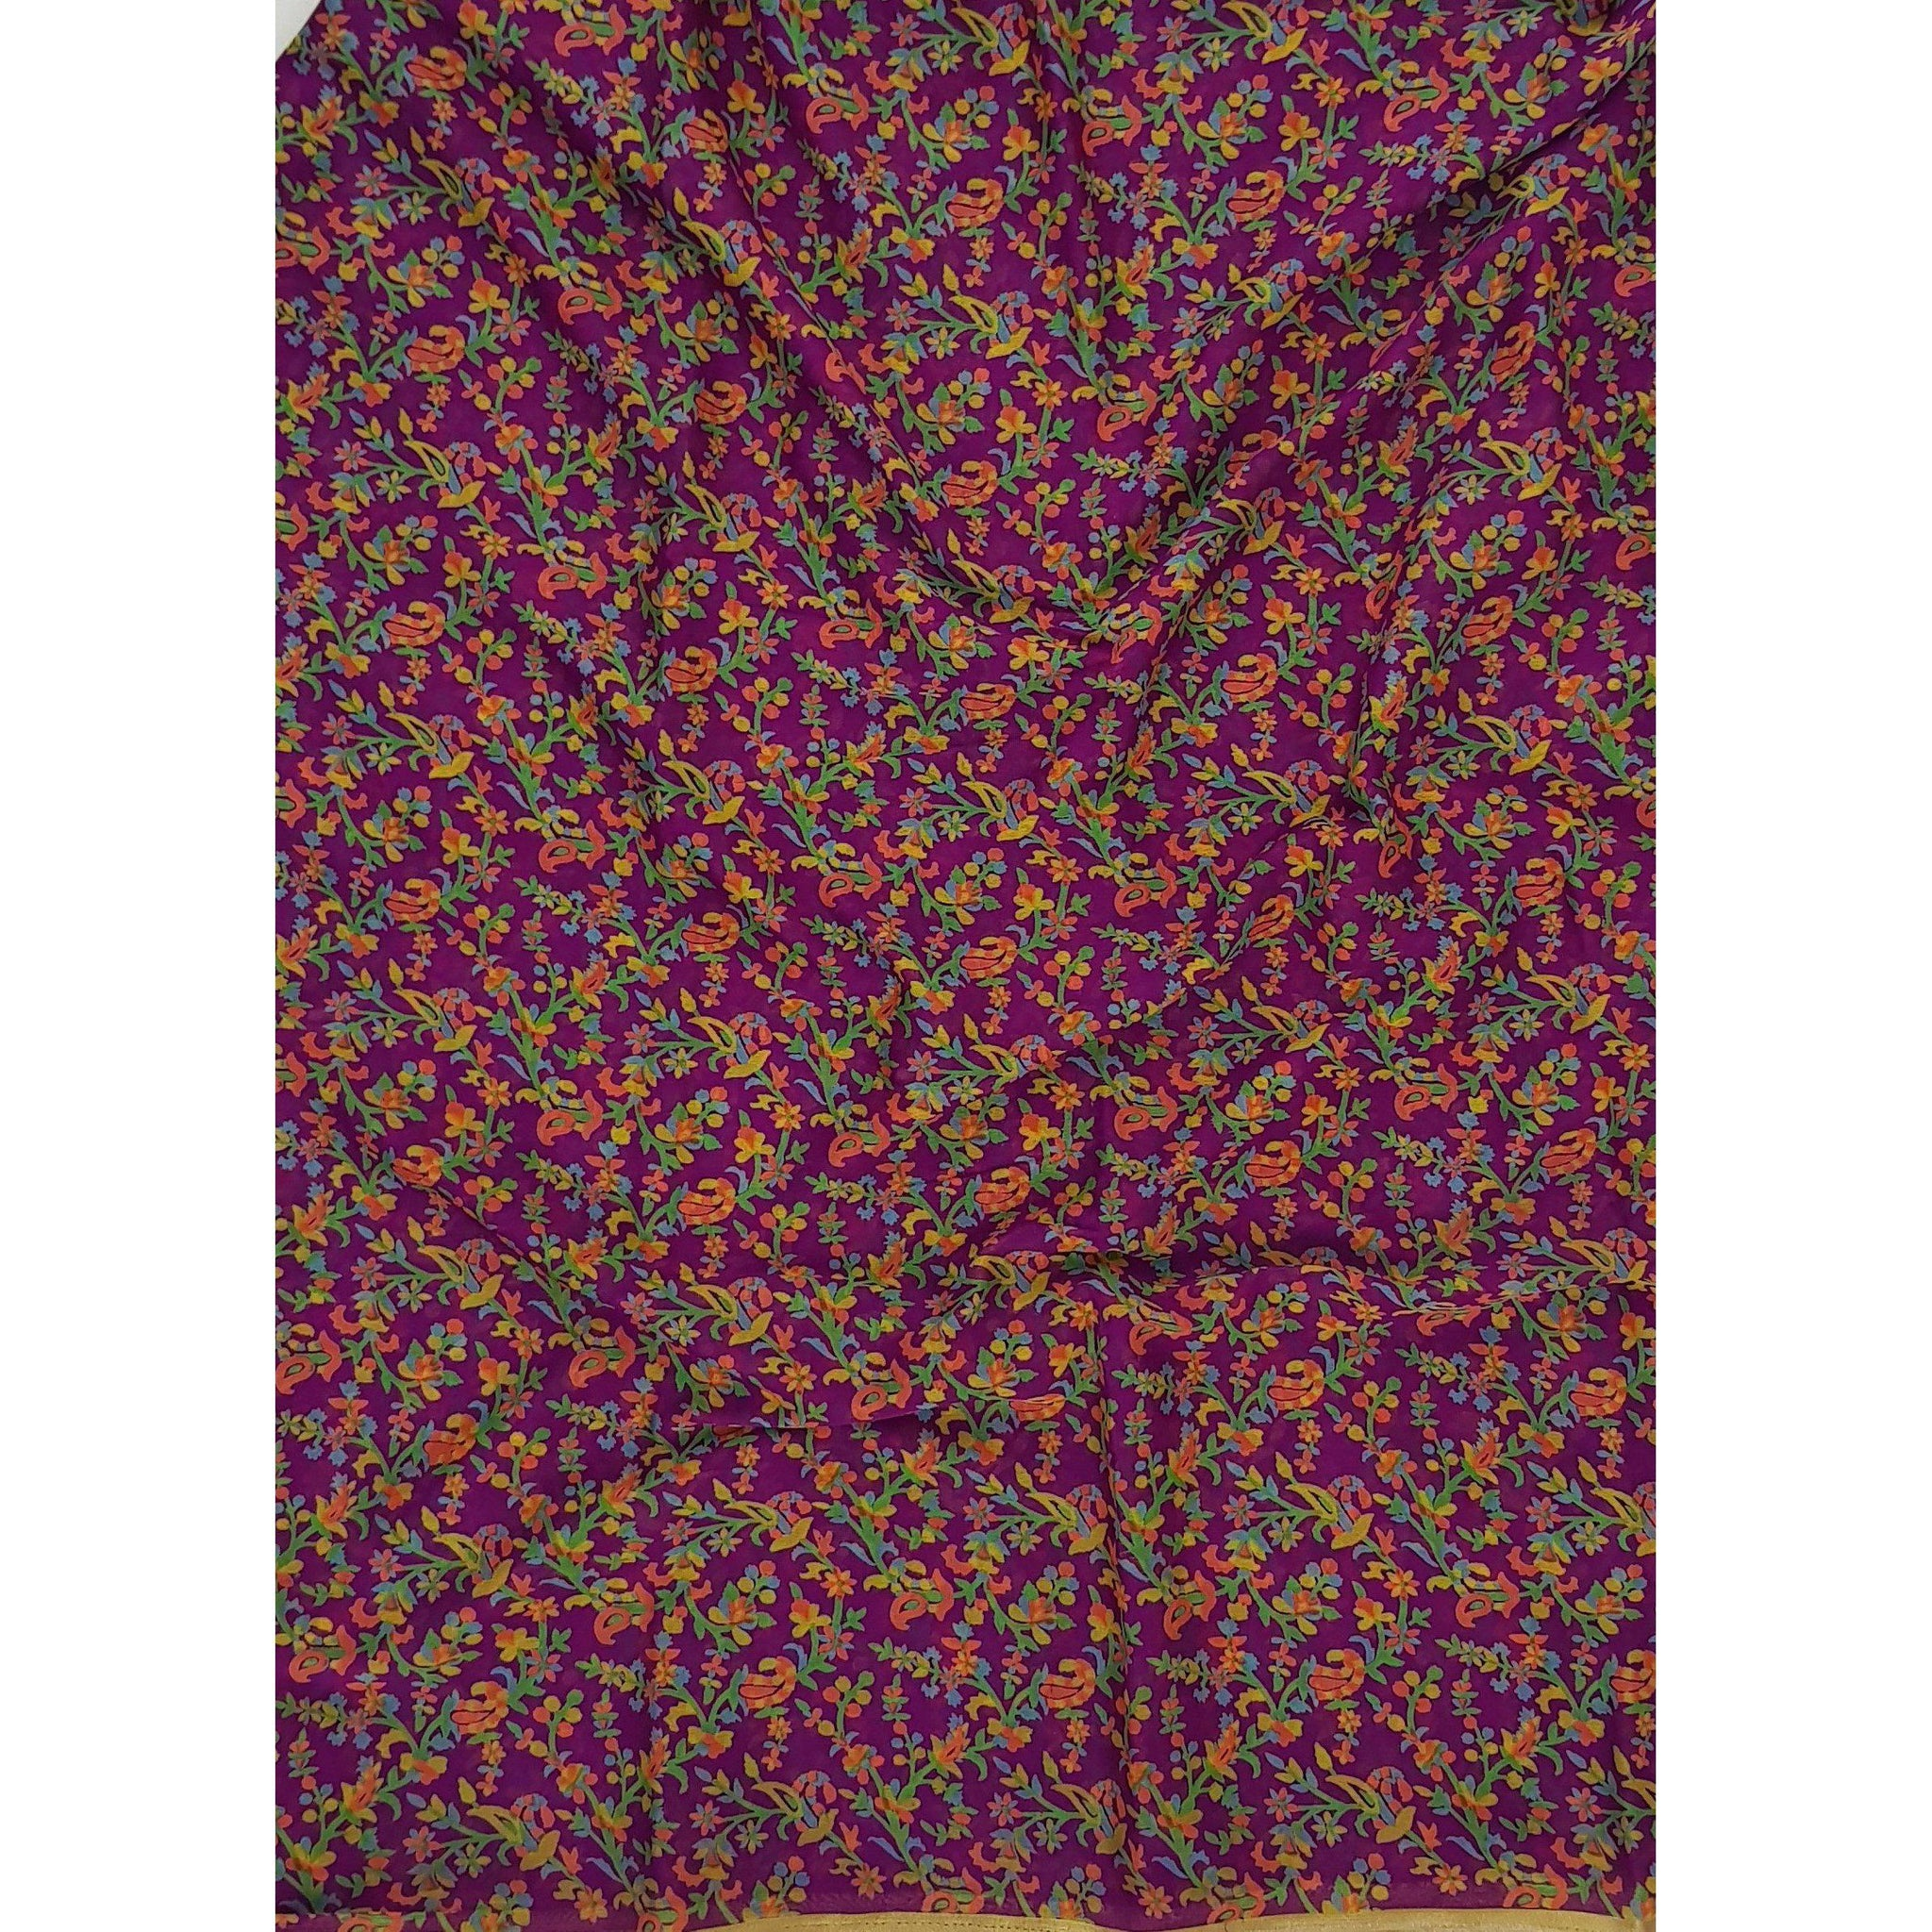 Purple color floral printed chiffon saree - Vinshika